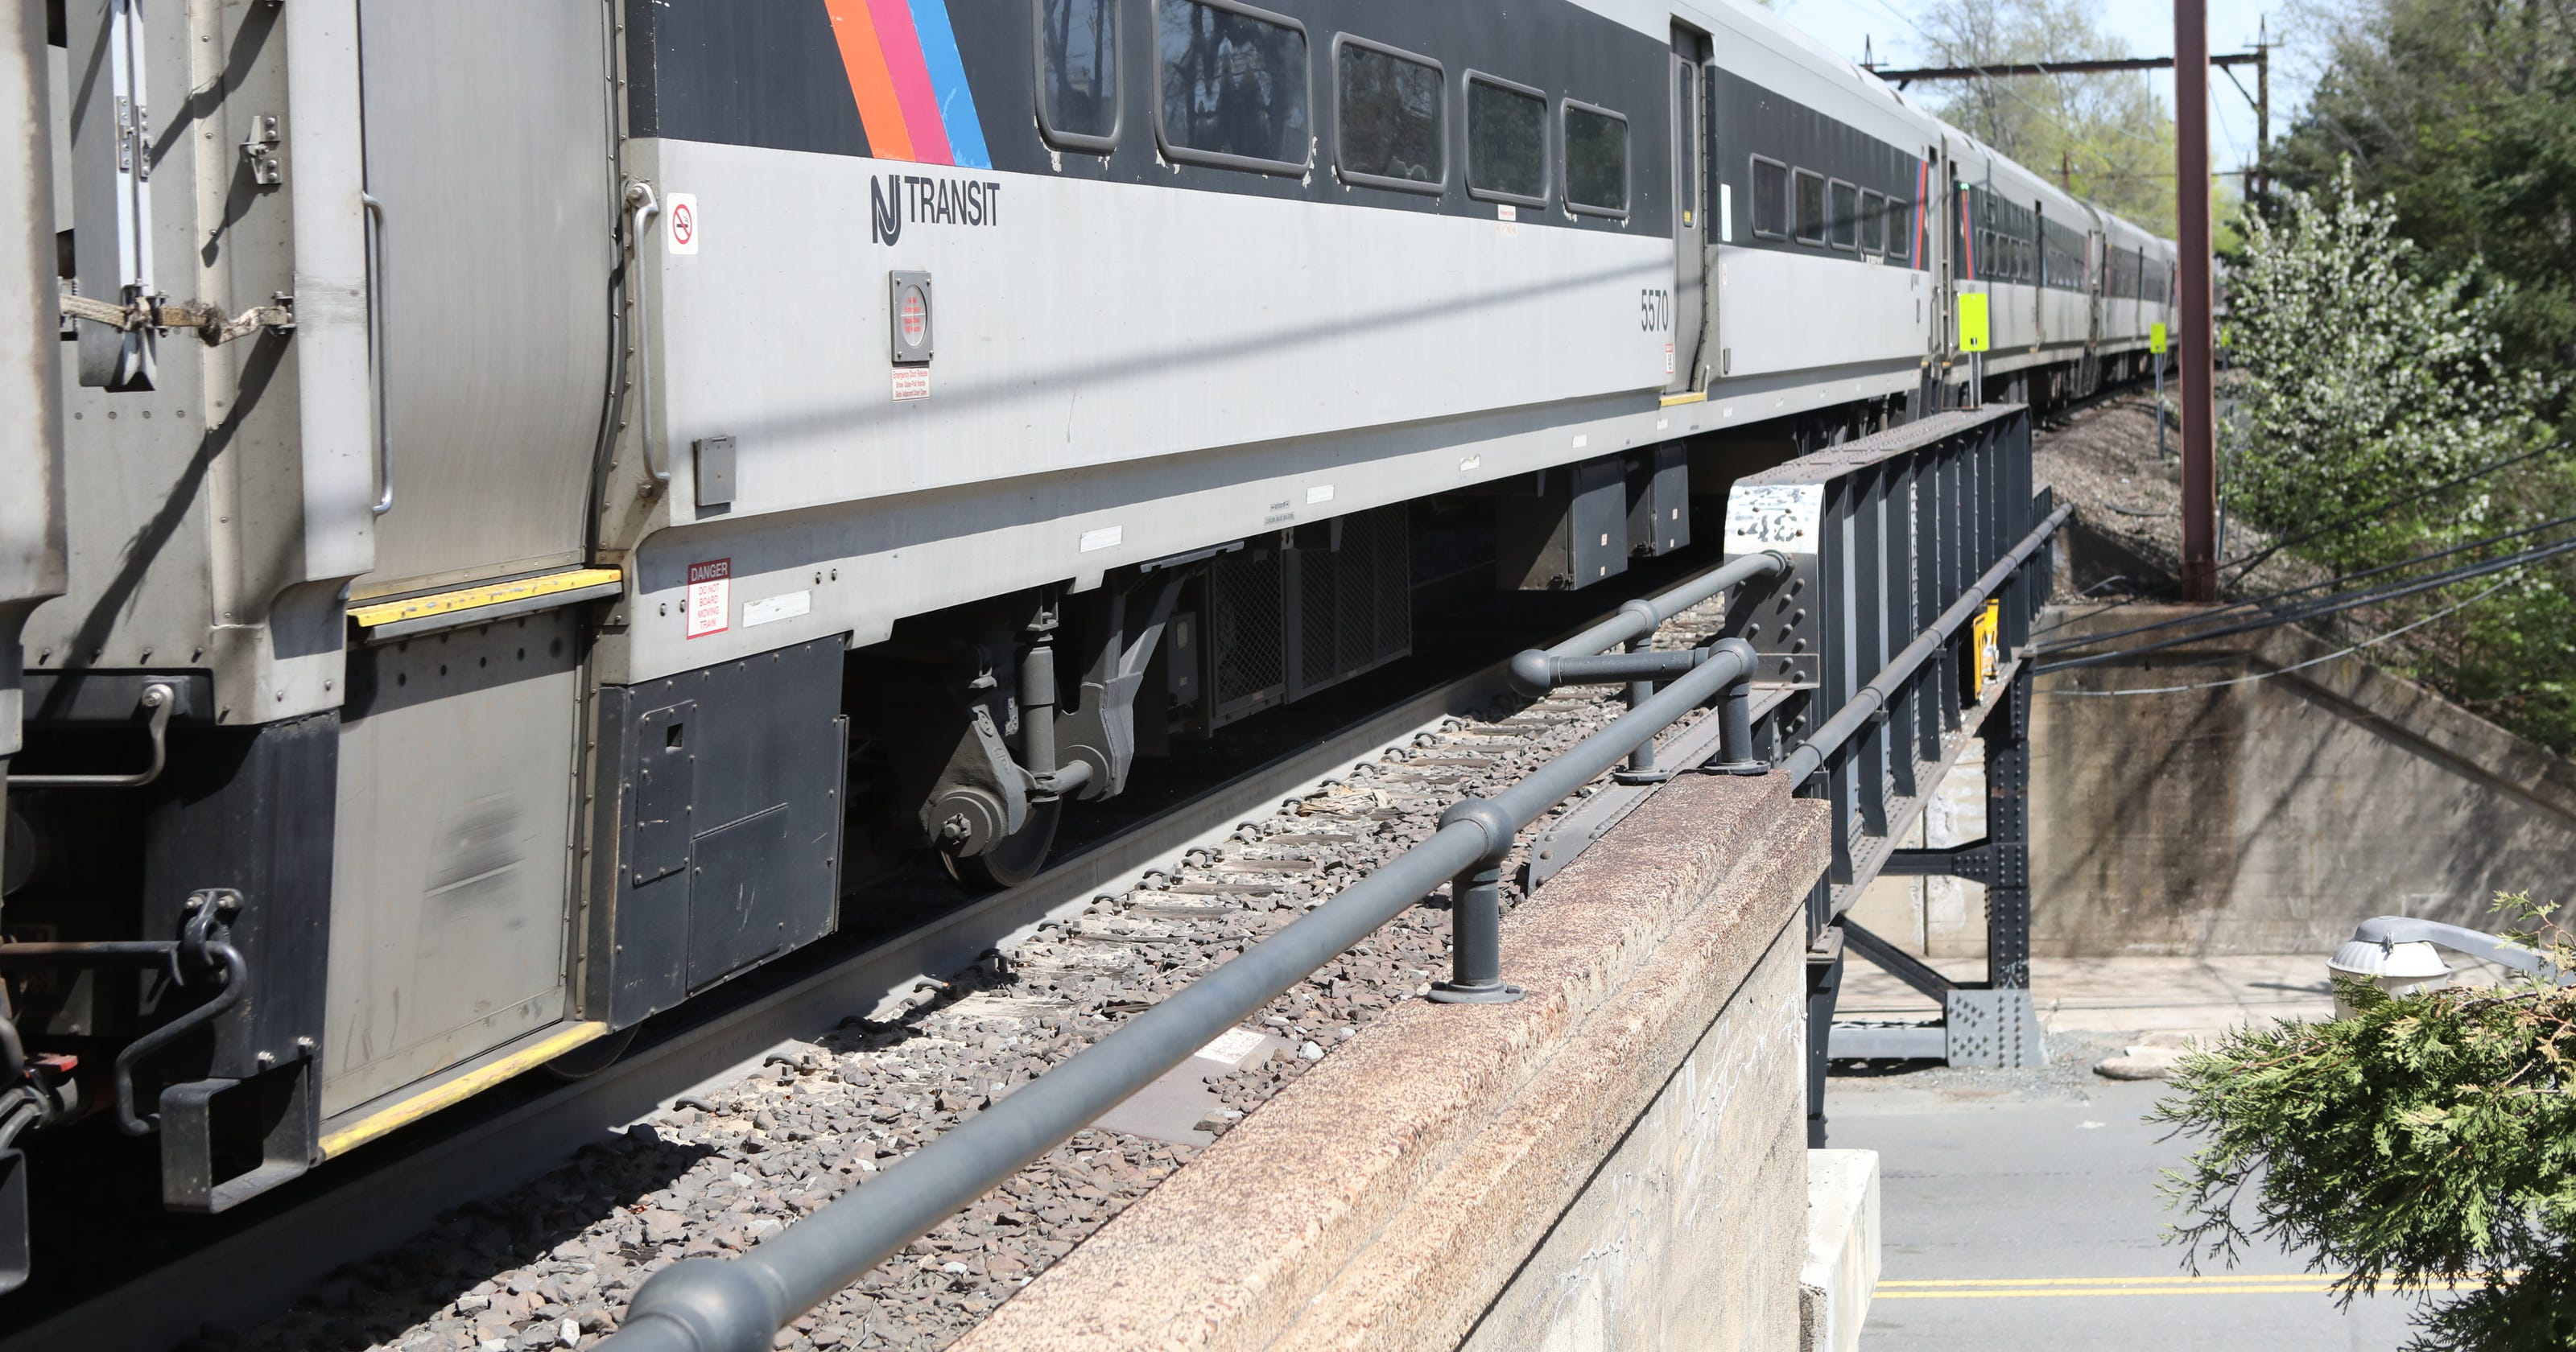 NJ Transit to cancel some trains to catch up on positive